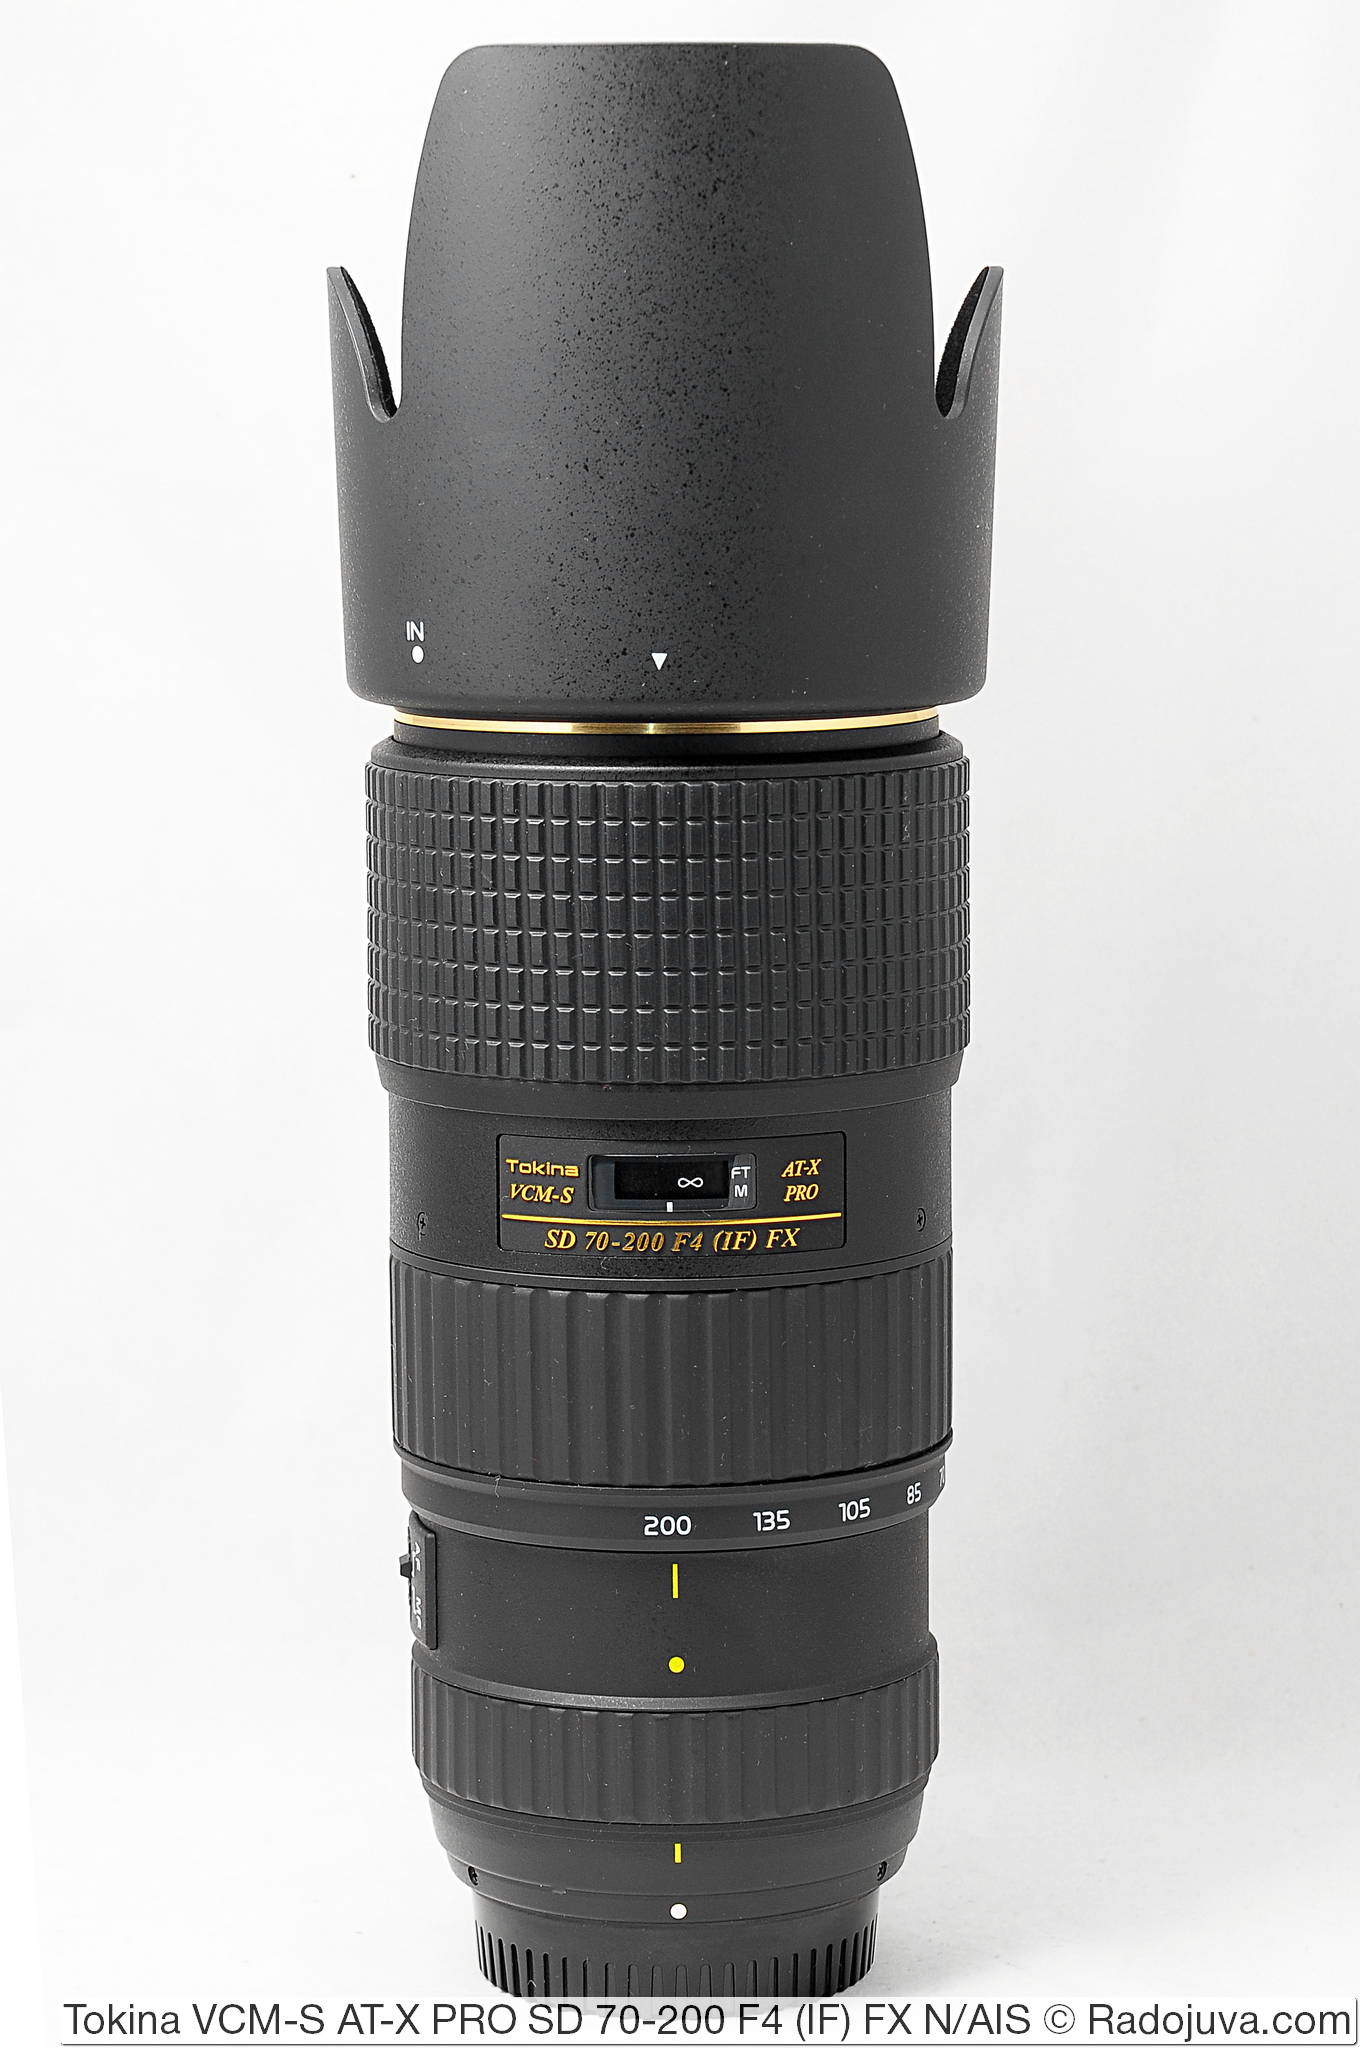 Tokina VCM-S AT-X PRO SD 70-200 F4 (IF) FX с блендой BH-672